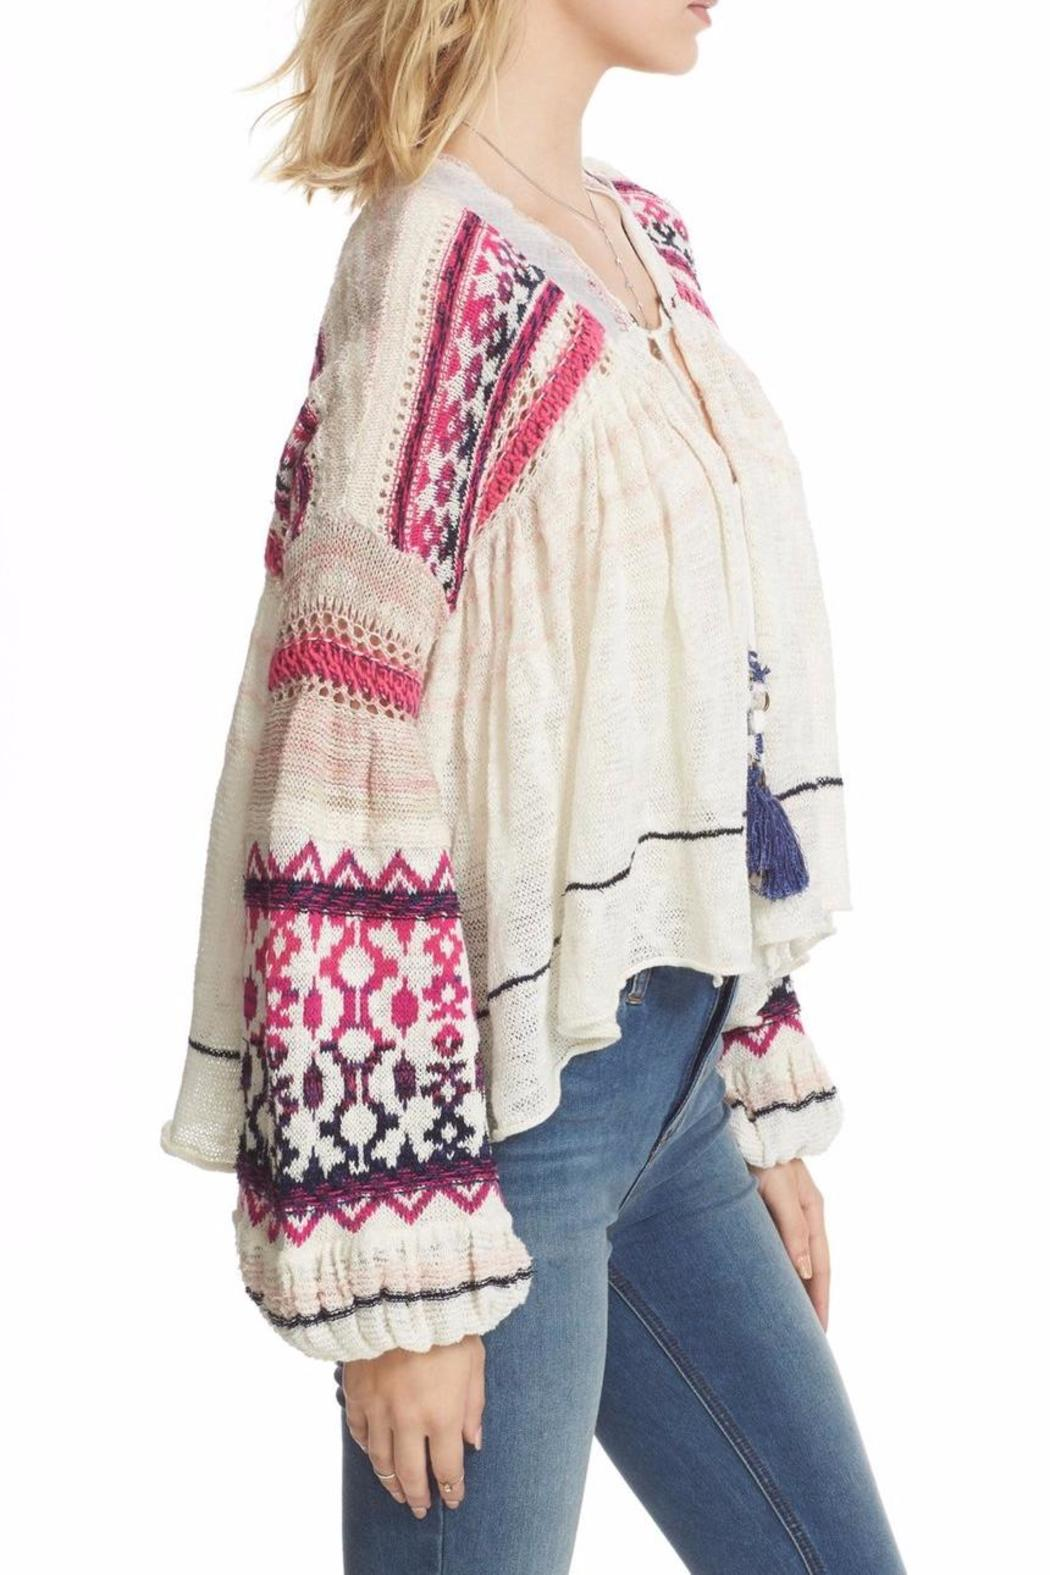 Free People Dreamland Laid Back Cardigan - Side Cropped Image